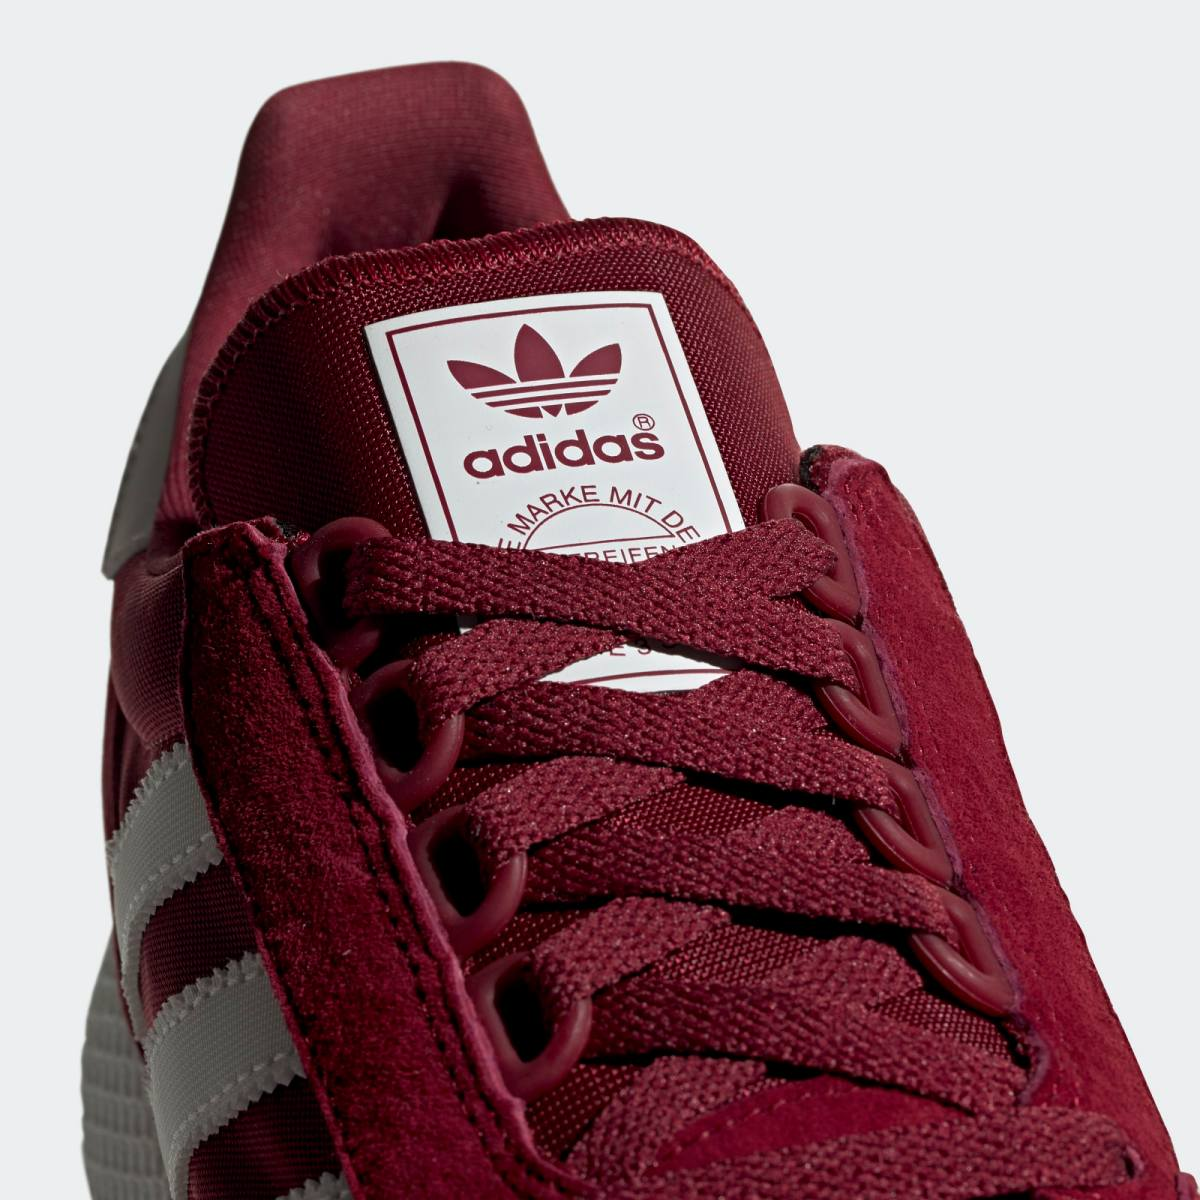 Forest_Grove_Shoes_Burgundy_CG5674_41_detail